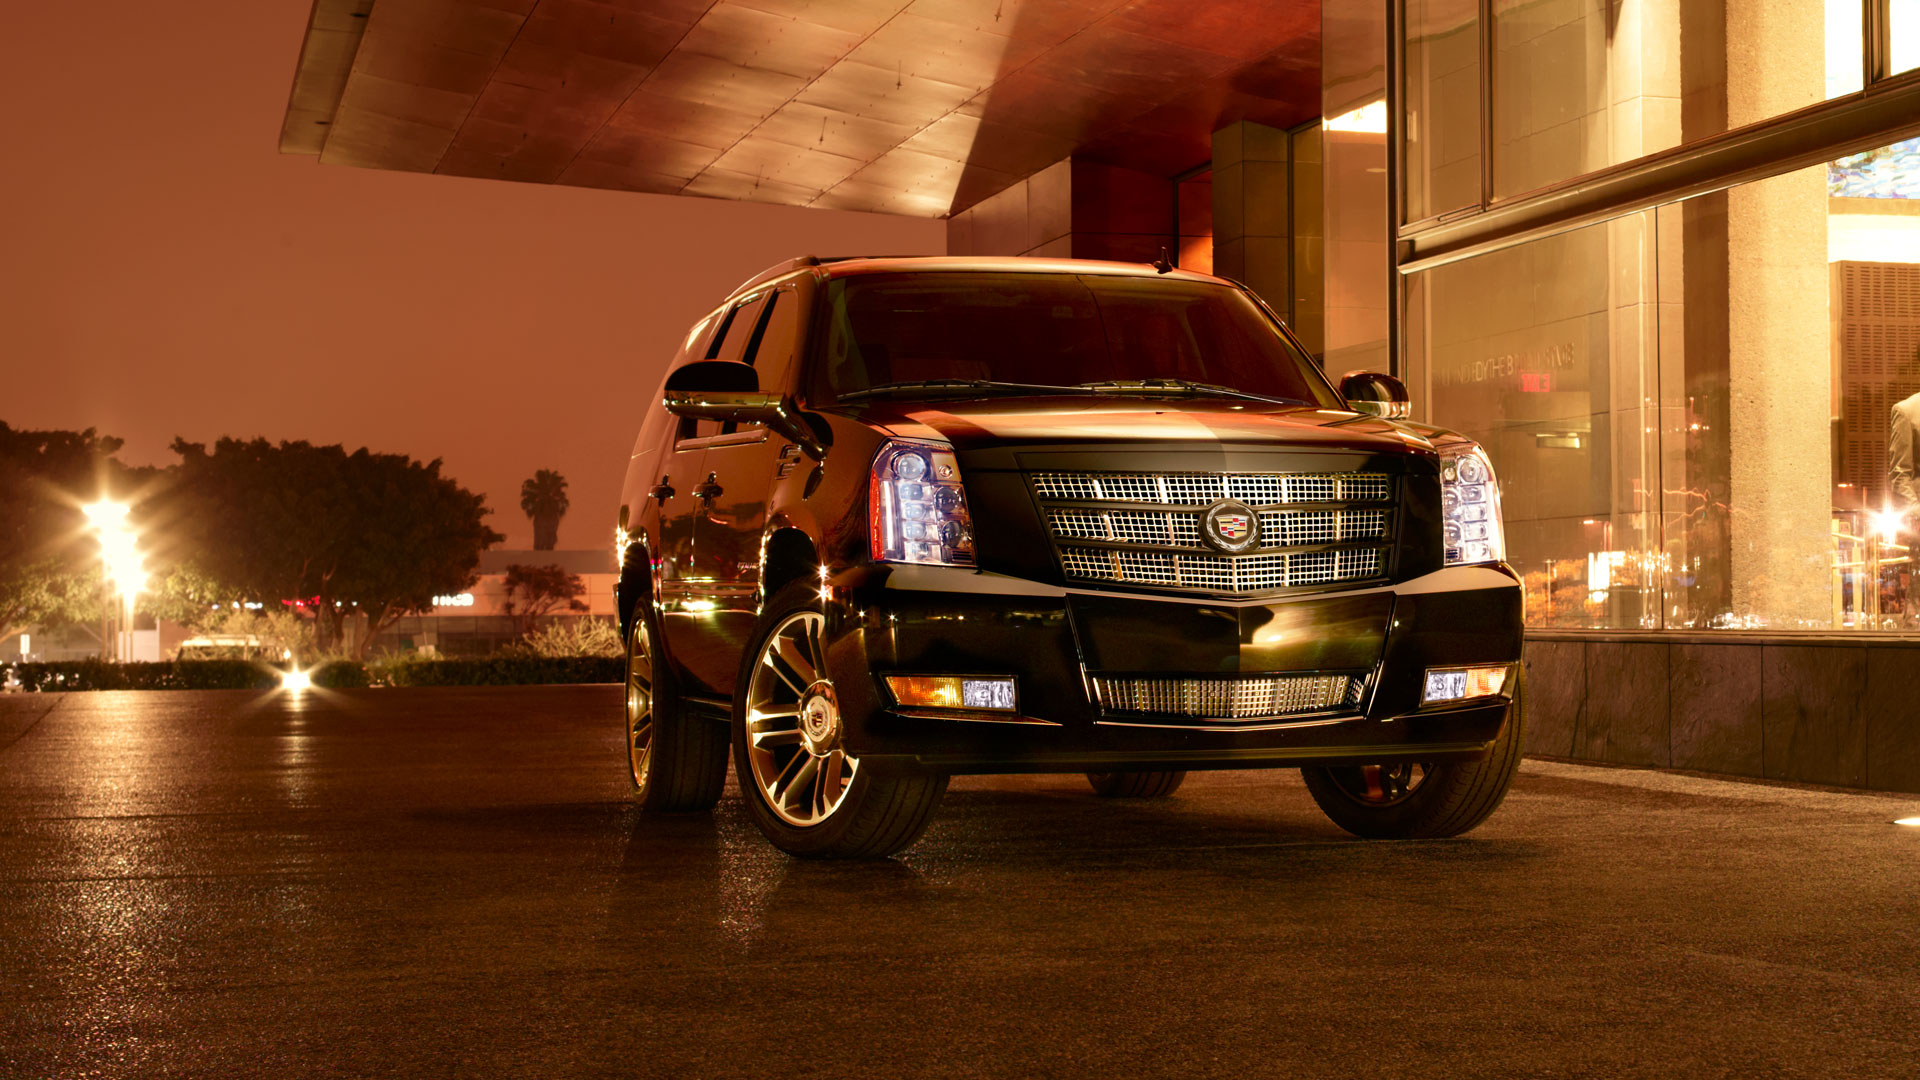 tuning cadillac escalade suv 2012 online accessories and spare parts for tuning cadillac. Black Bedroom Furniture Sets. Home Design Ideas